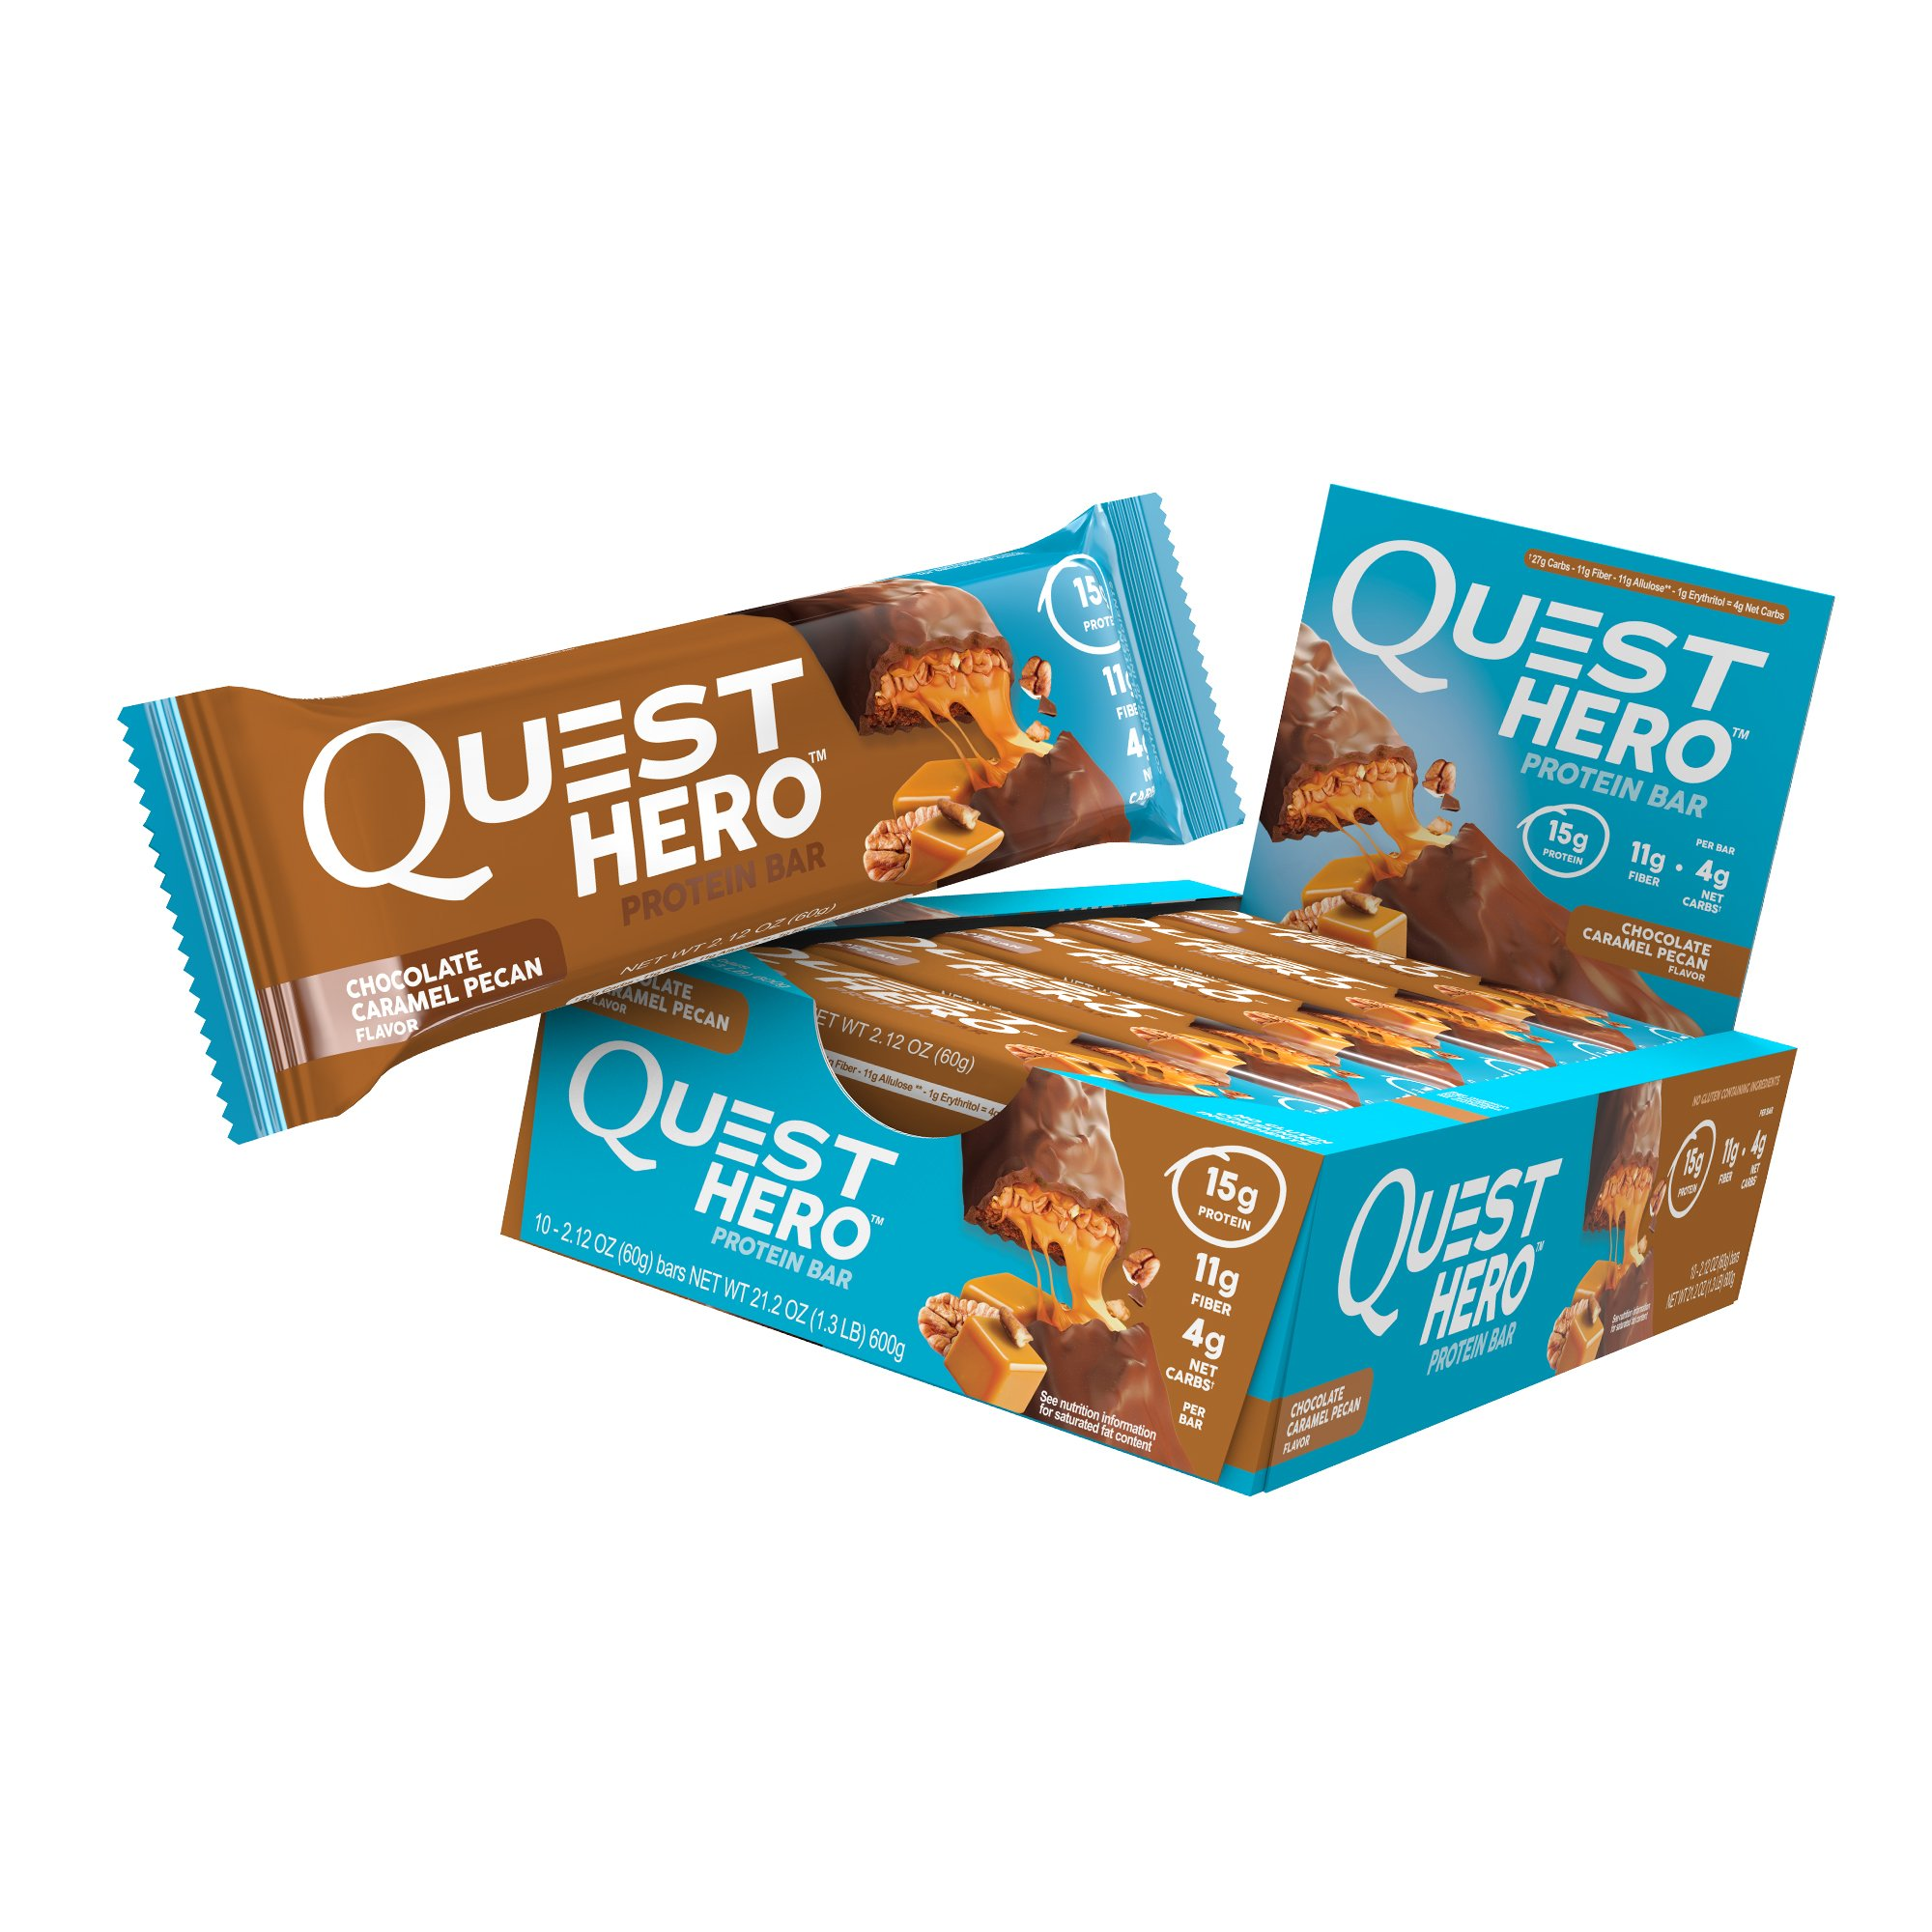 Quest Nutrition Chocolate Caramel Pecan Hero Protein Bar, Low Carb, Gluten Free, 10 Count by Quest Nutrition